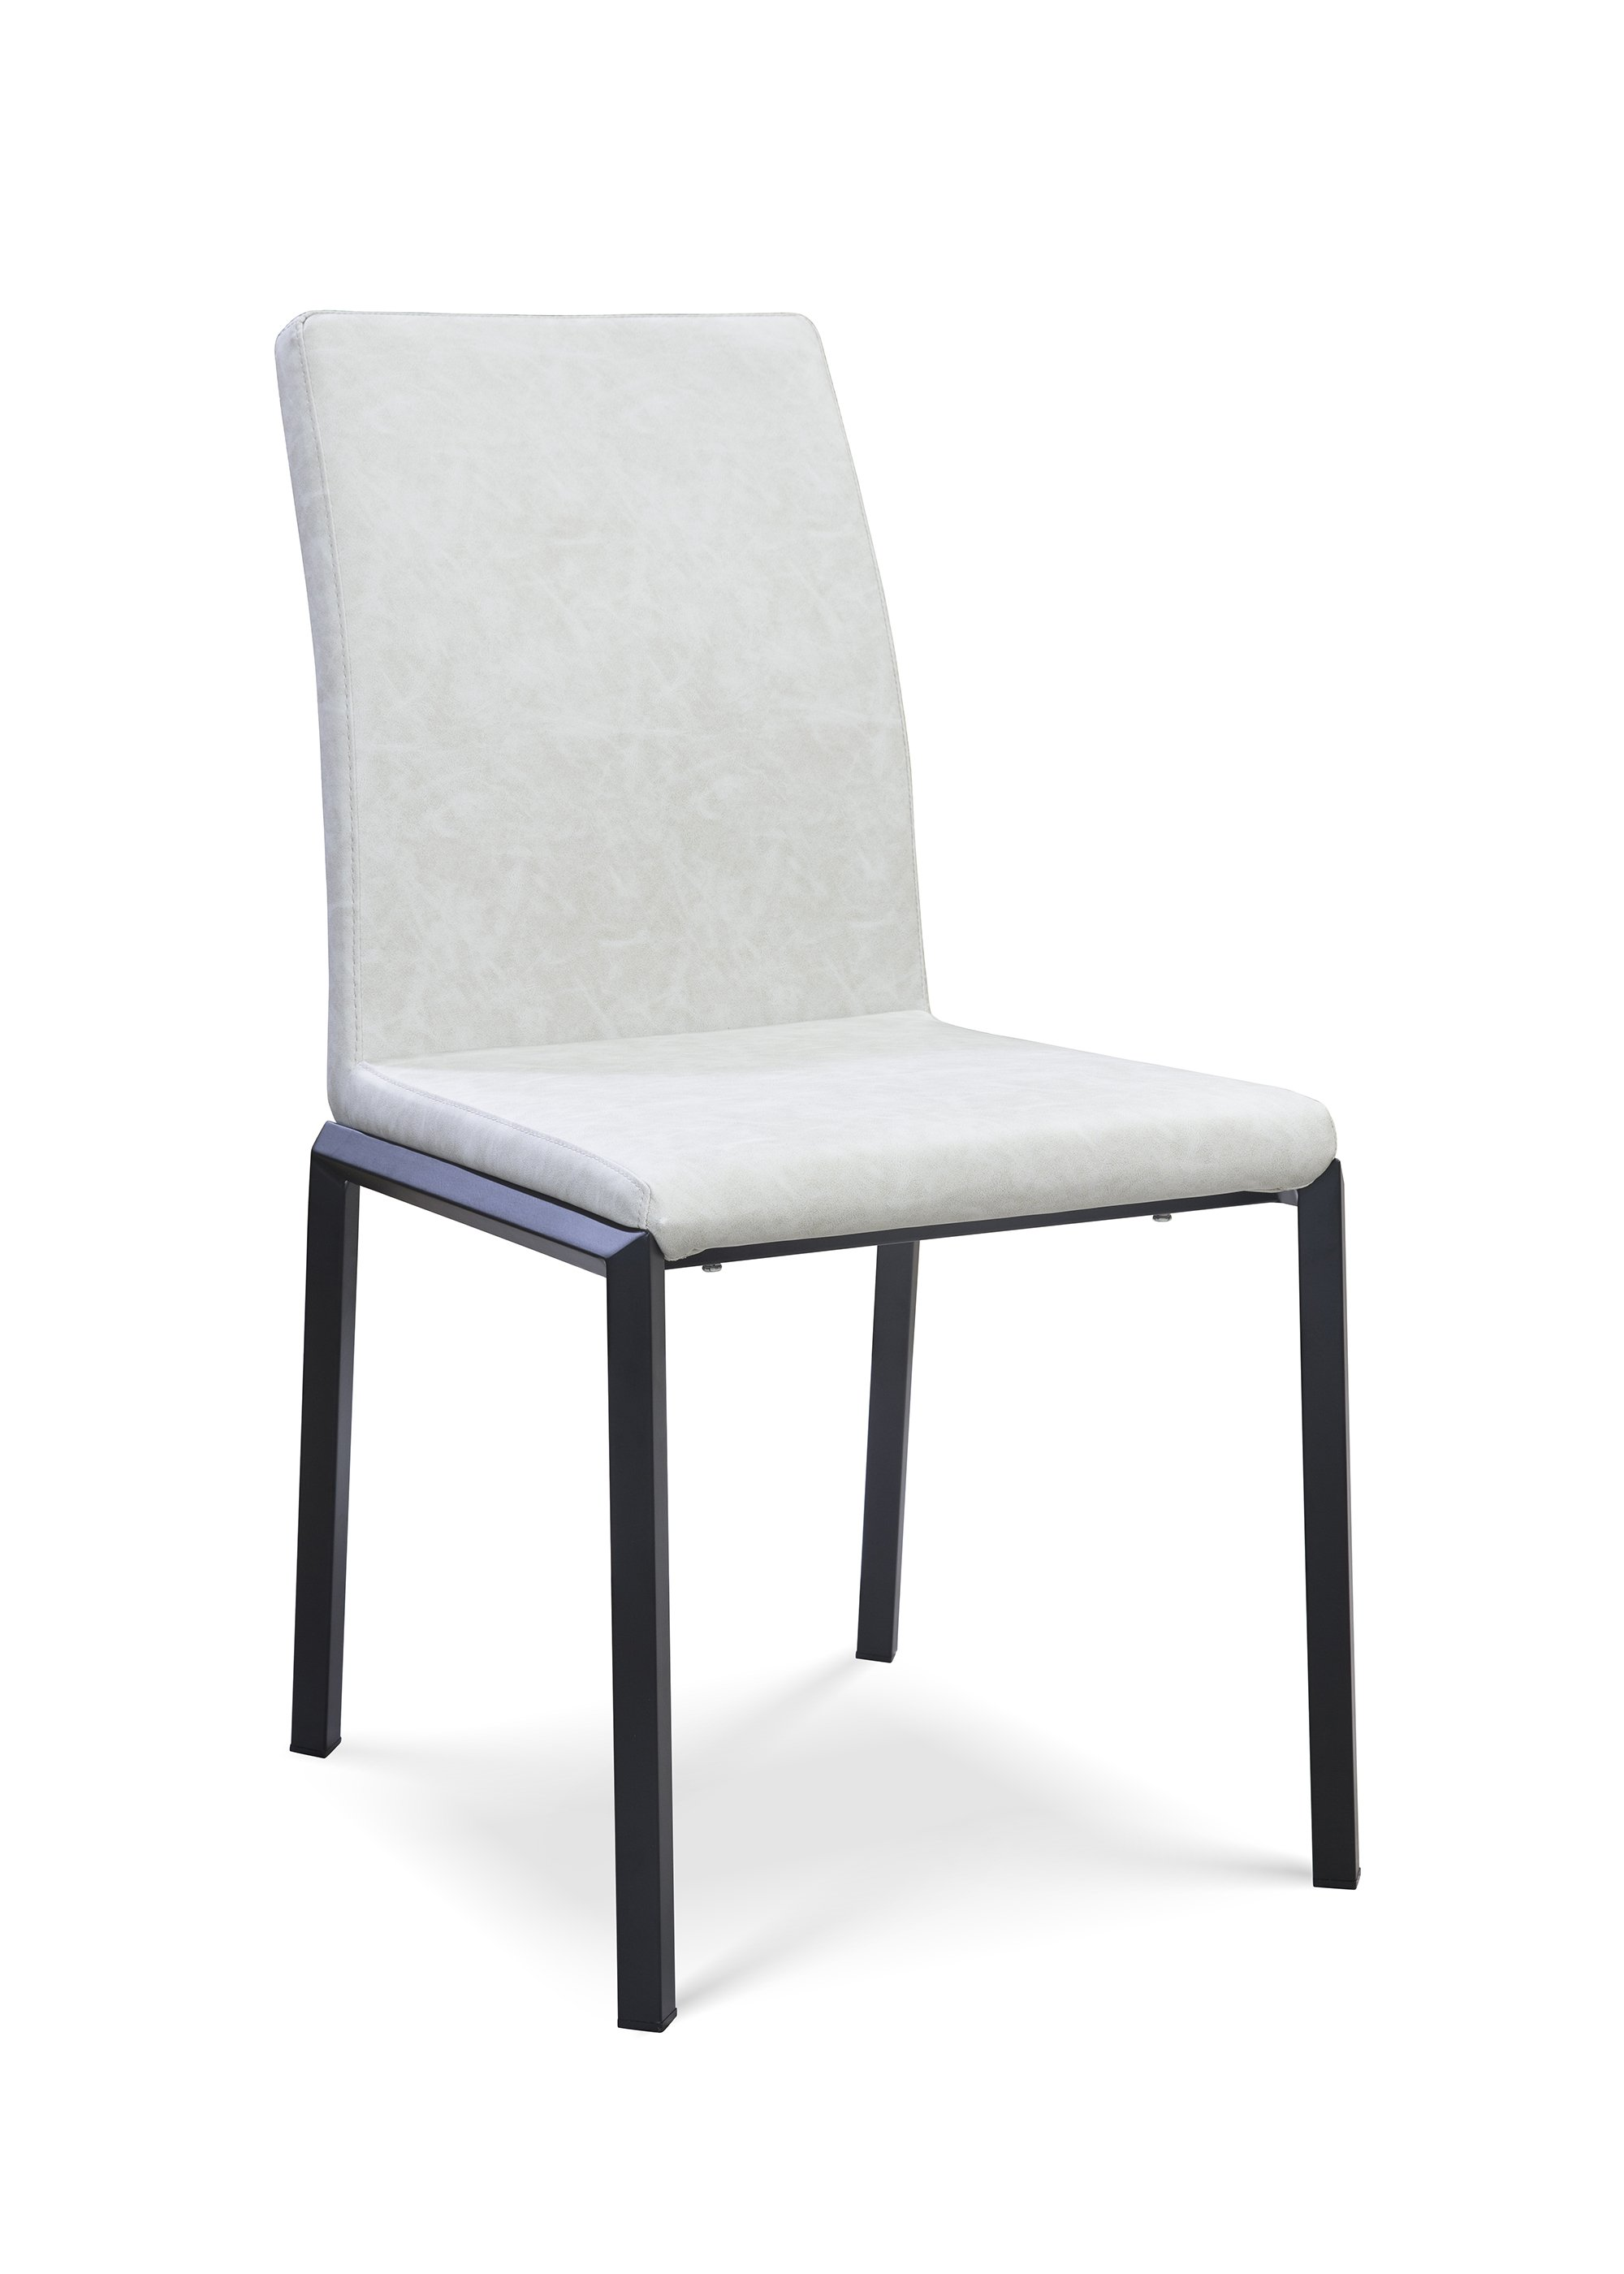 Societal Dining Chair Dining Chairs Chair Side Chairs